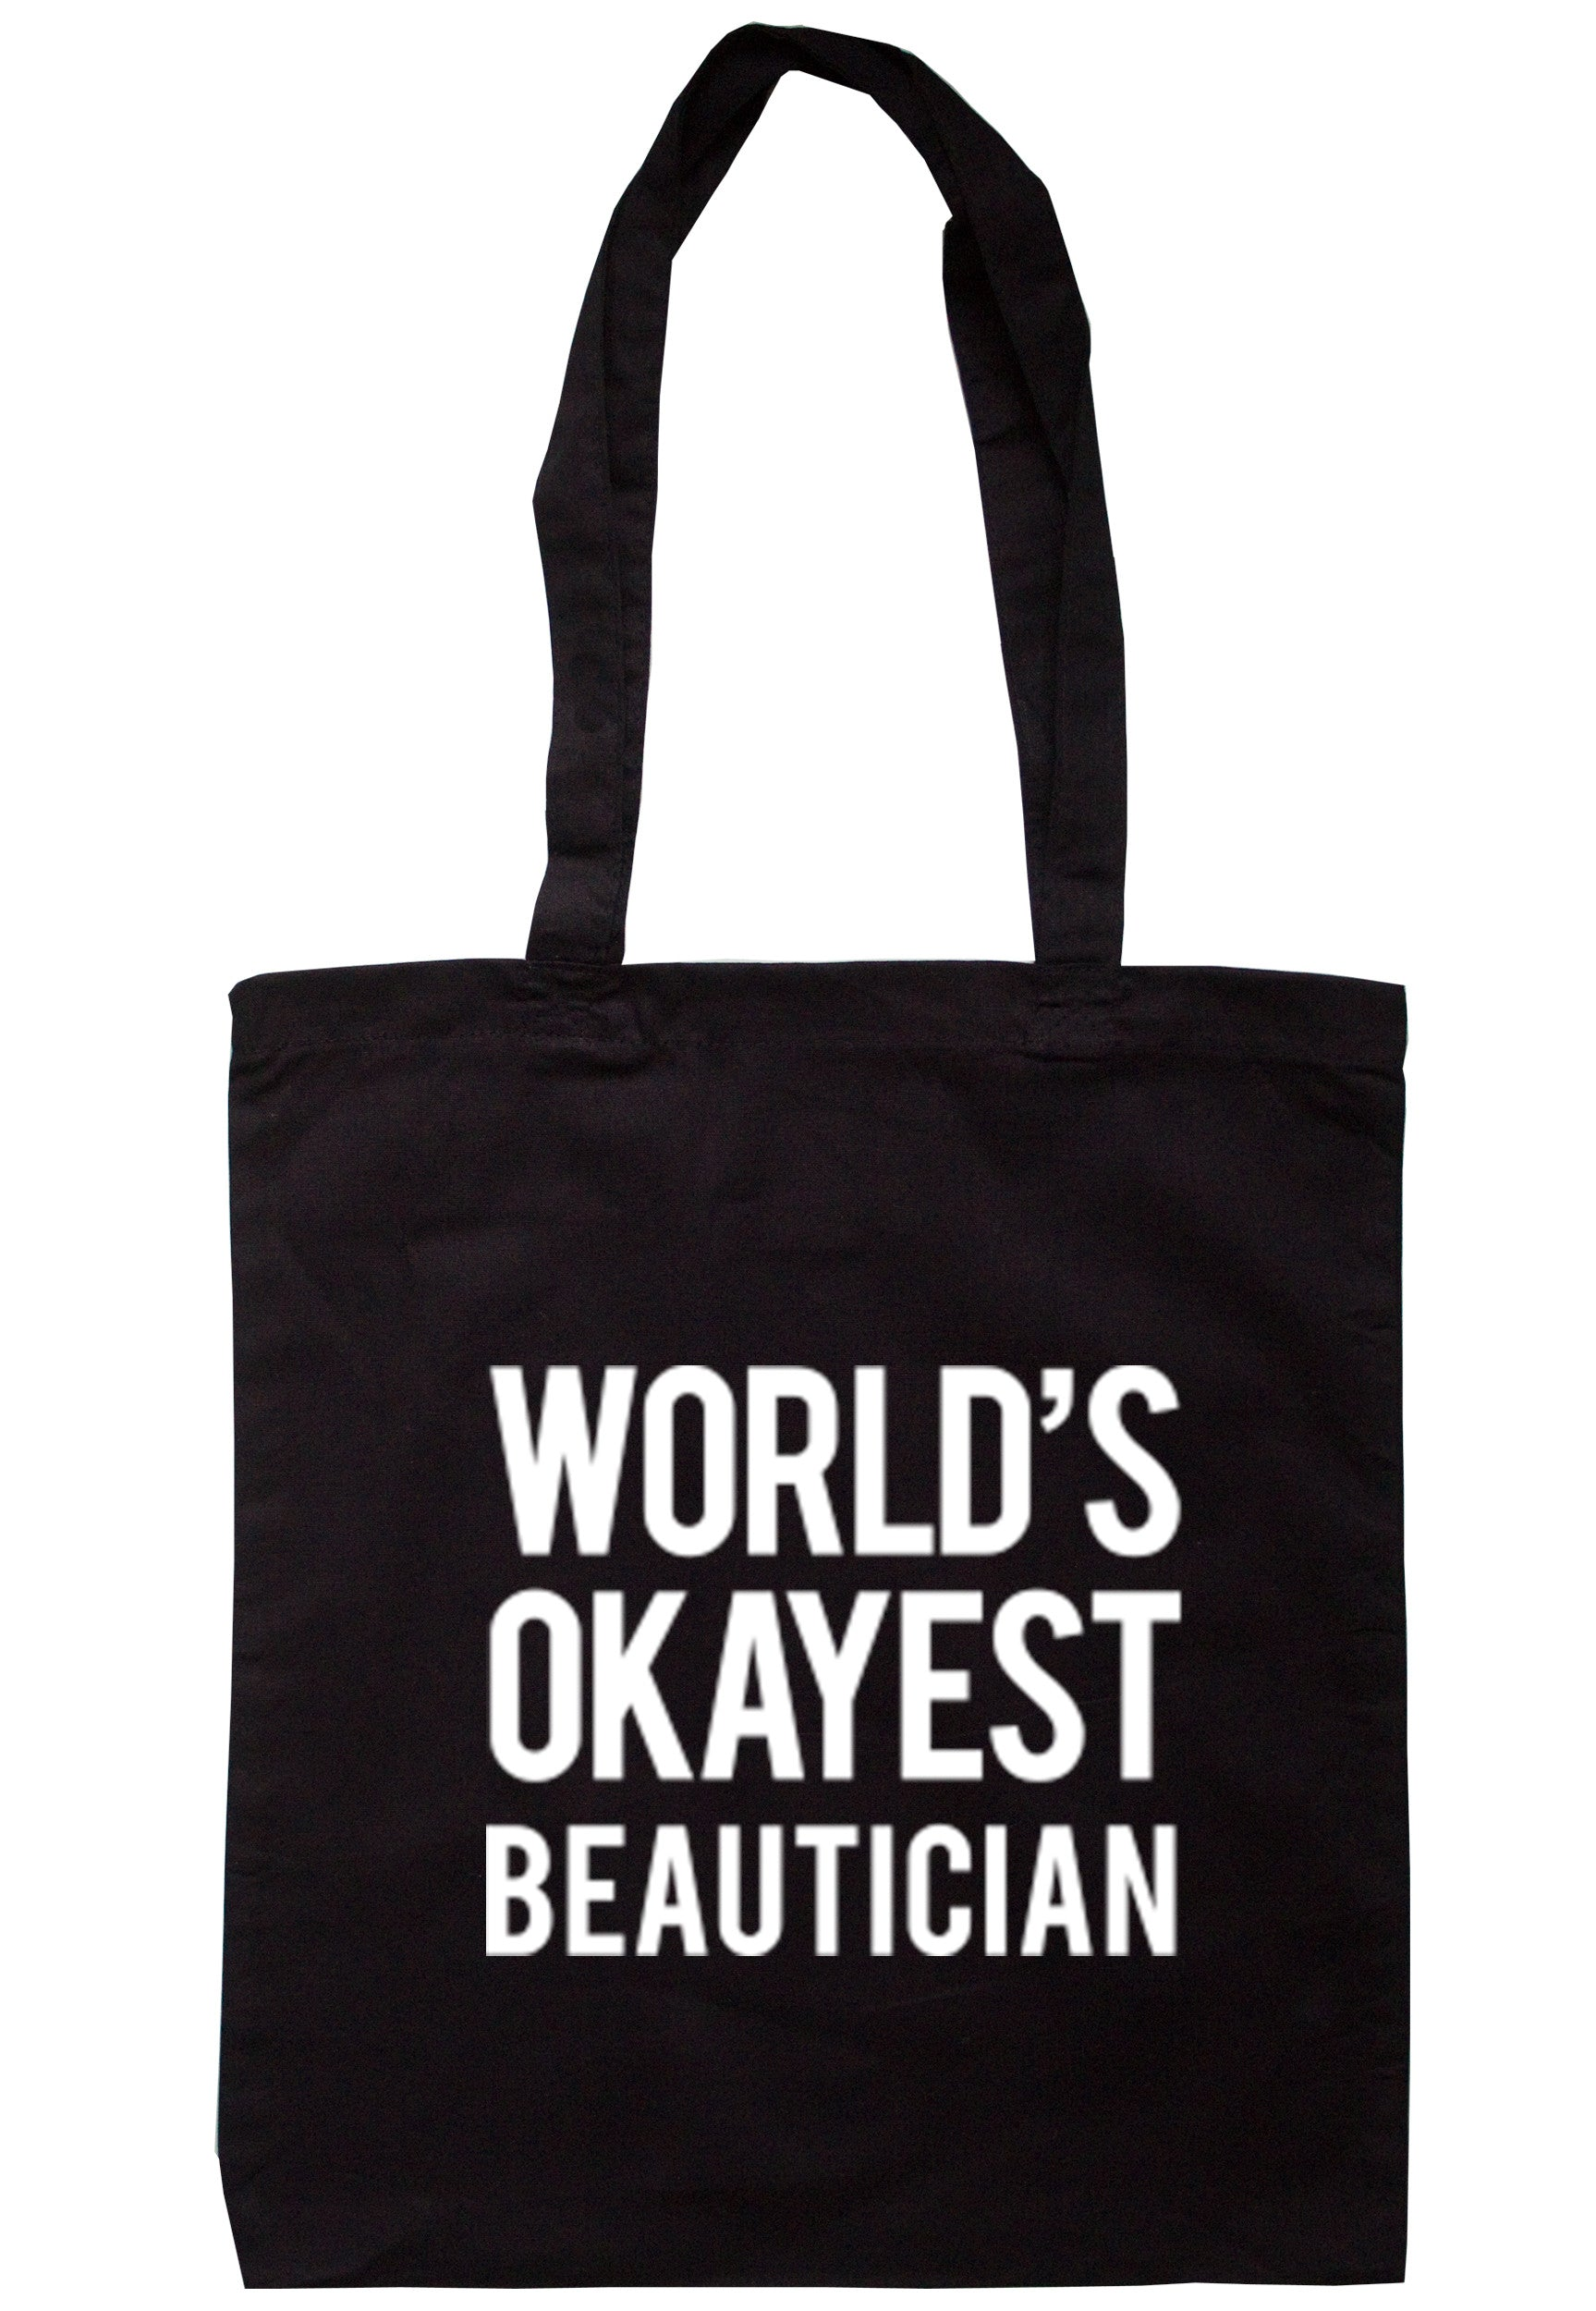 Worlds Okayest Beautician Tote Bag TB0292 - Illustrated Identity Ltd.